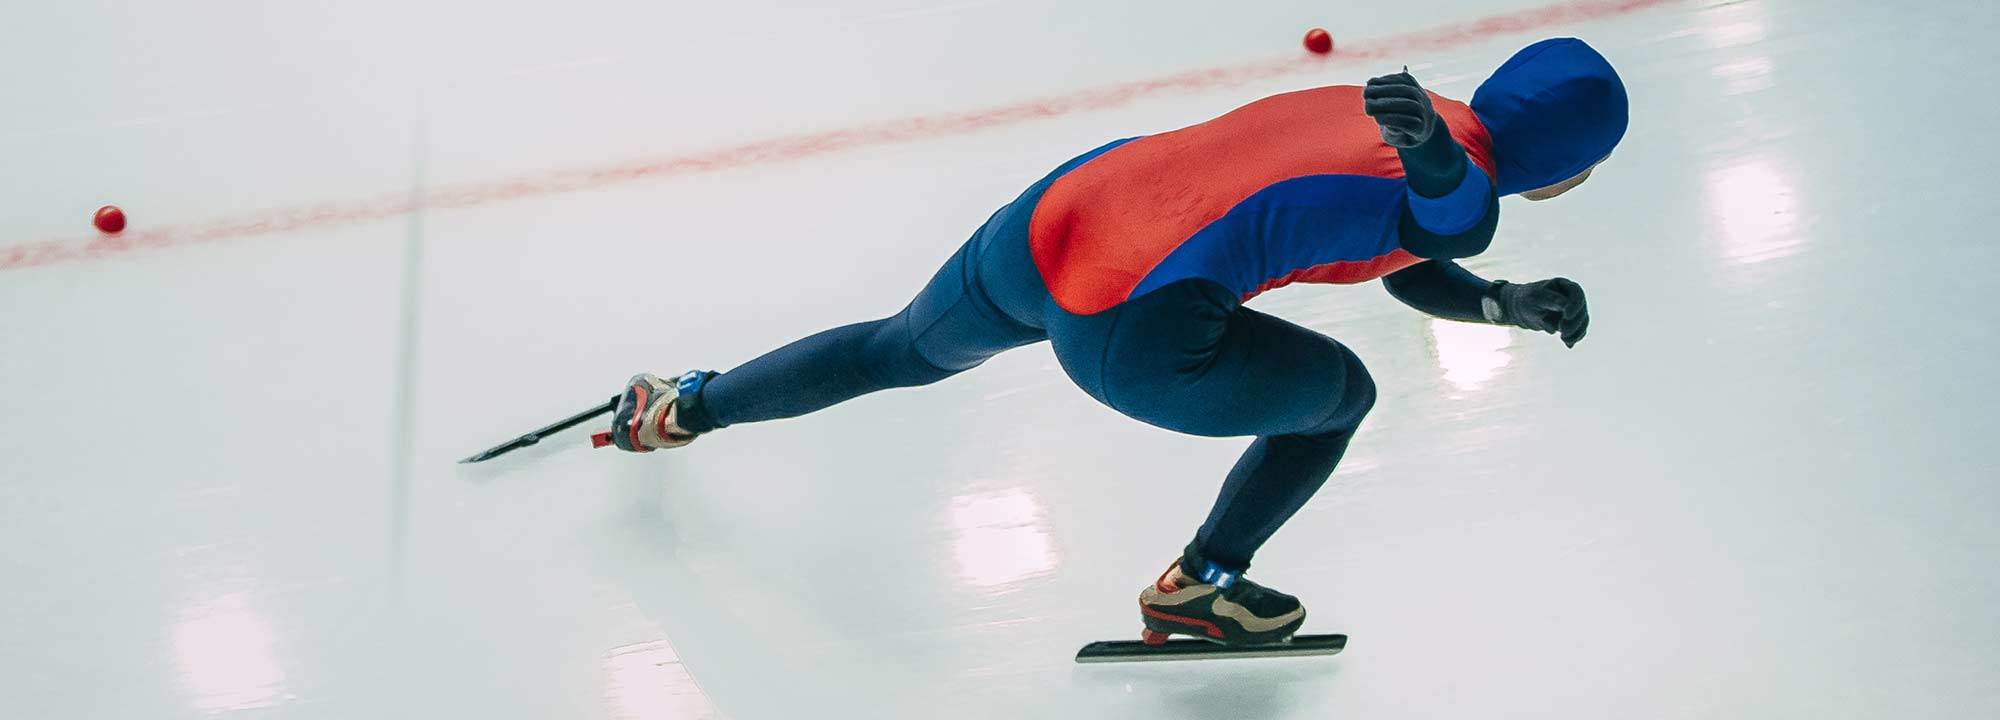 Long track speed skater from above